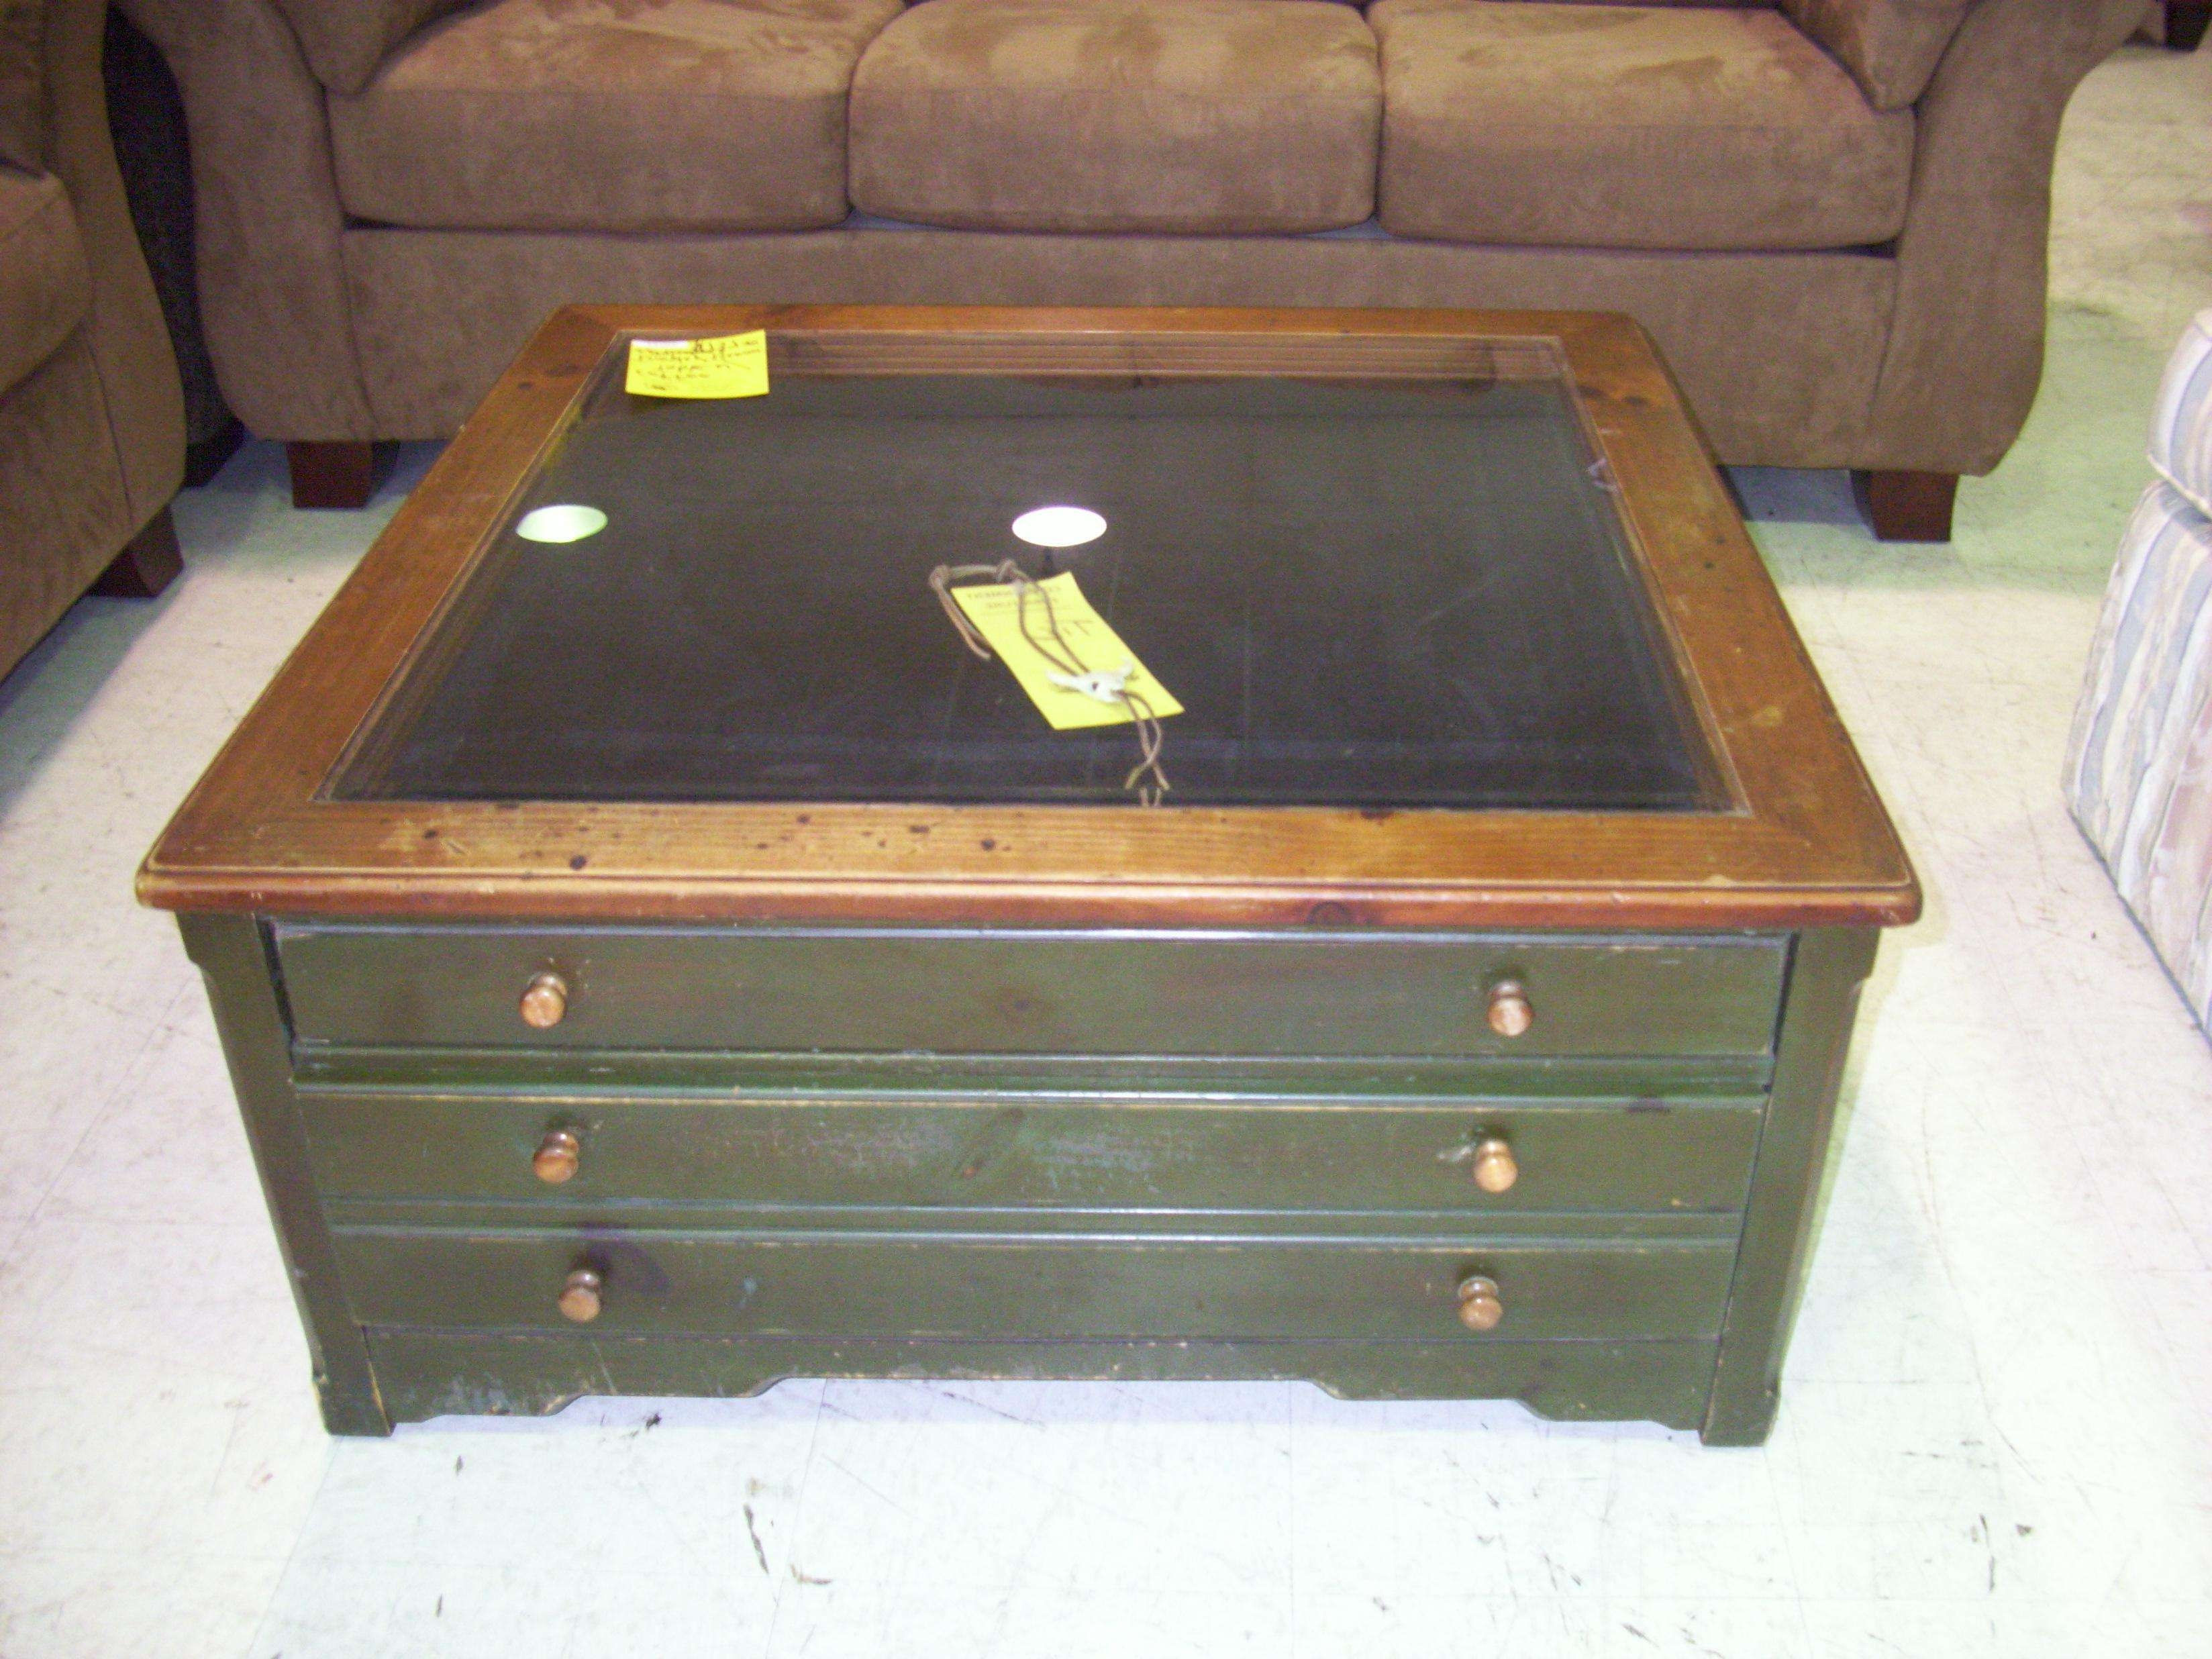 Famous Glass Top Display Coffee Tables With Drawers Regarding Coffee Table : Amazing Glass Top Display Coffee Table Wood Coffee (View 6 of 20)